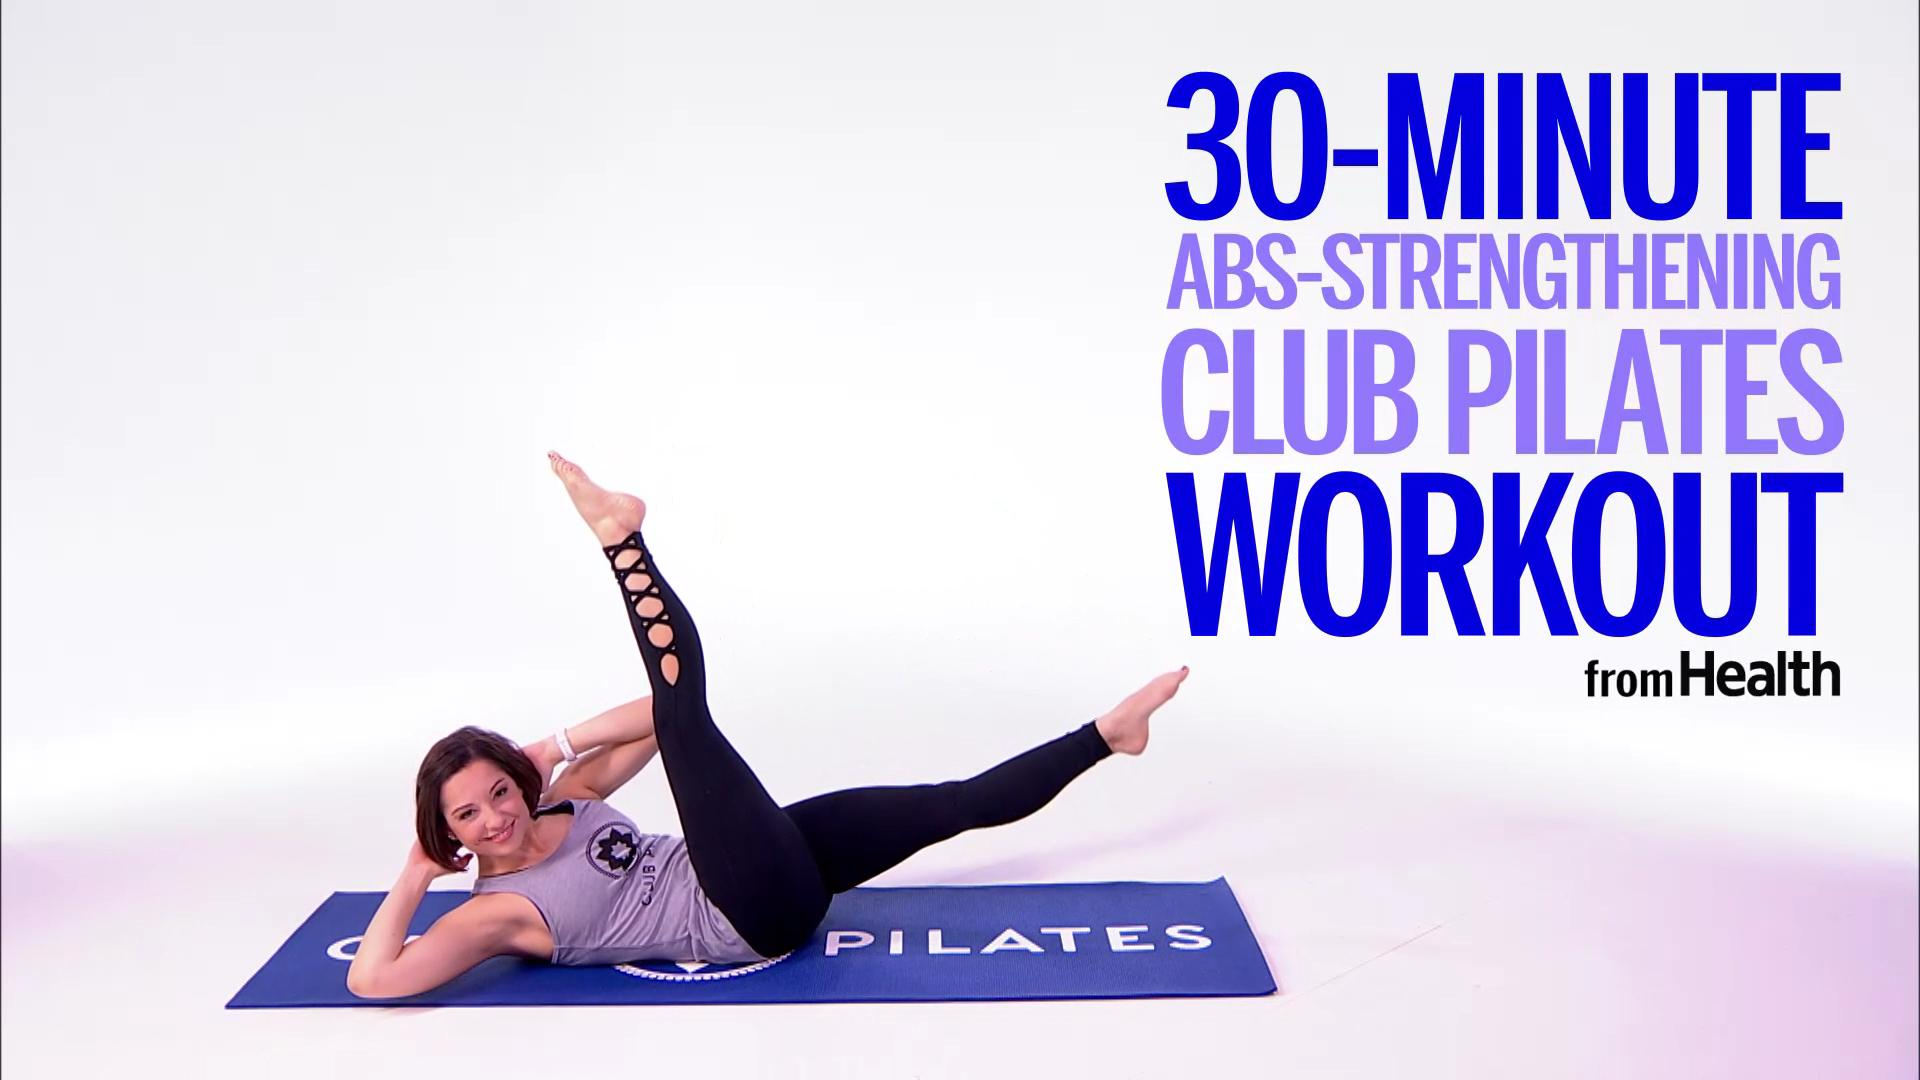 Get Stronger Abs in 30 Minutes With This At-Home Pilates Routine